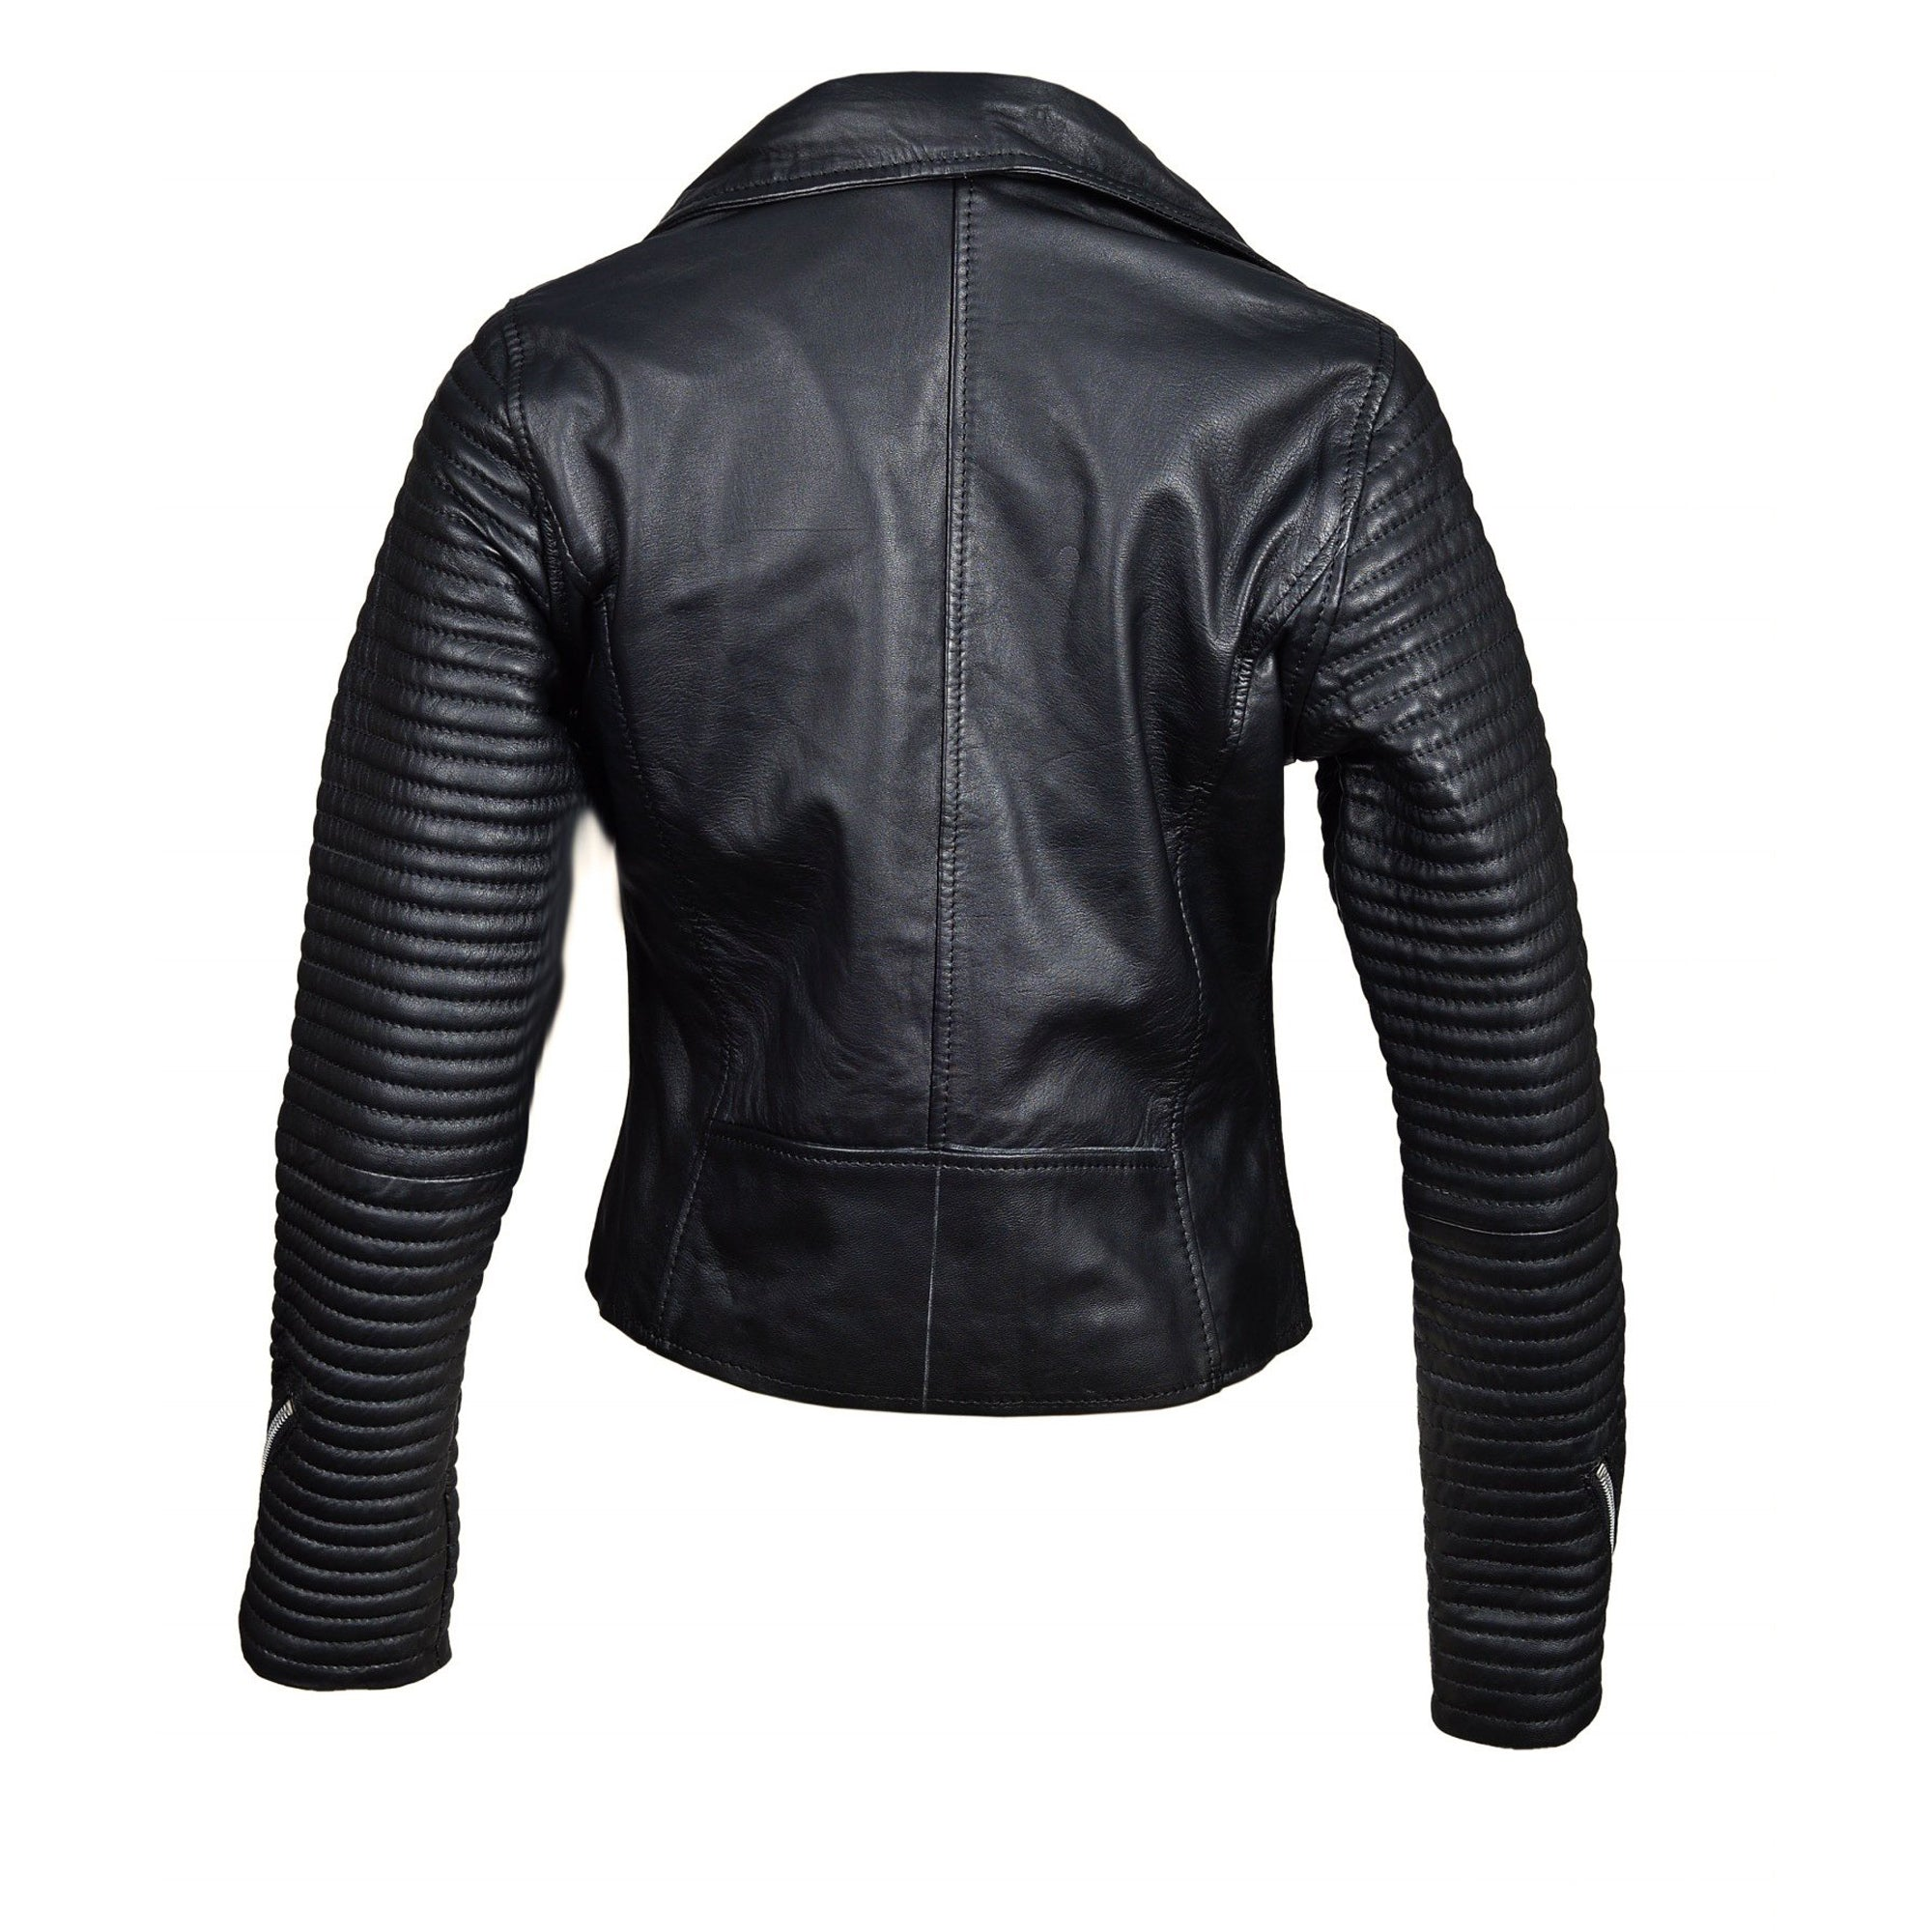 Nyah's biker style jacket with Ribbed sleeves